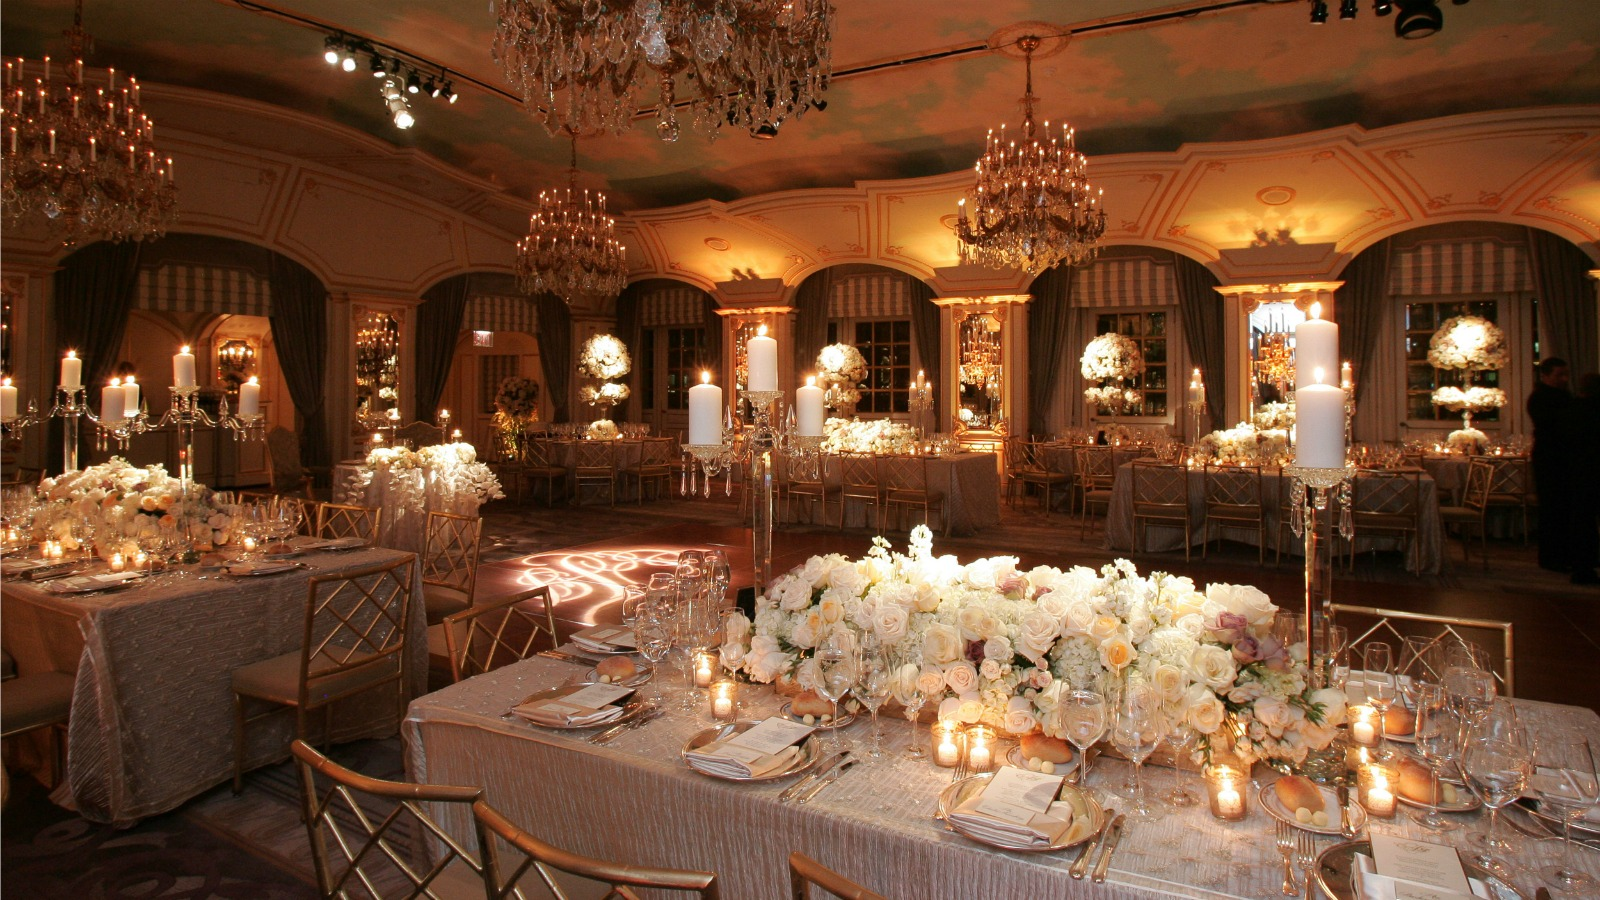 Wedding venues manhattan nyc the st regis new york for Small wedding venues ny